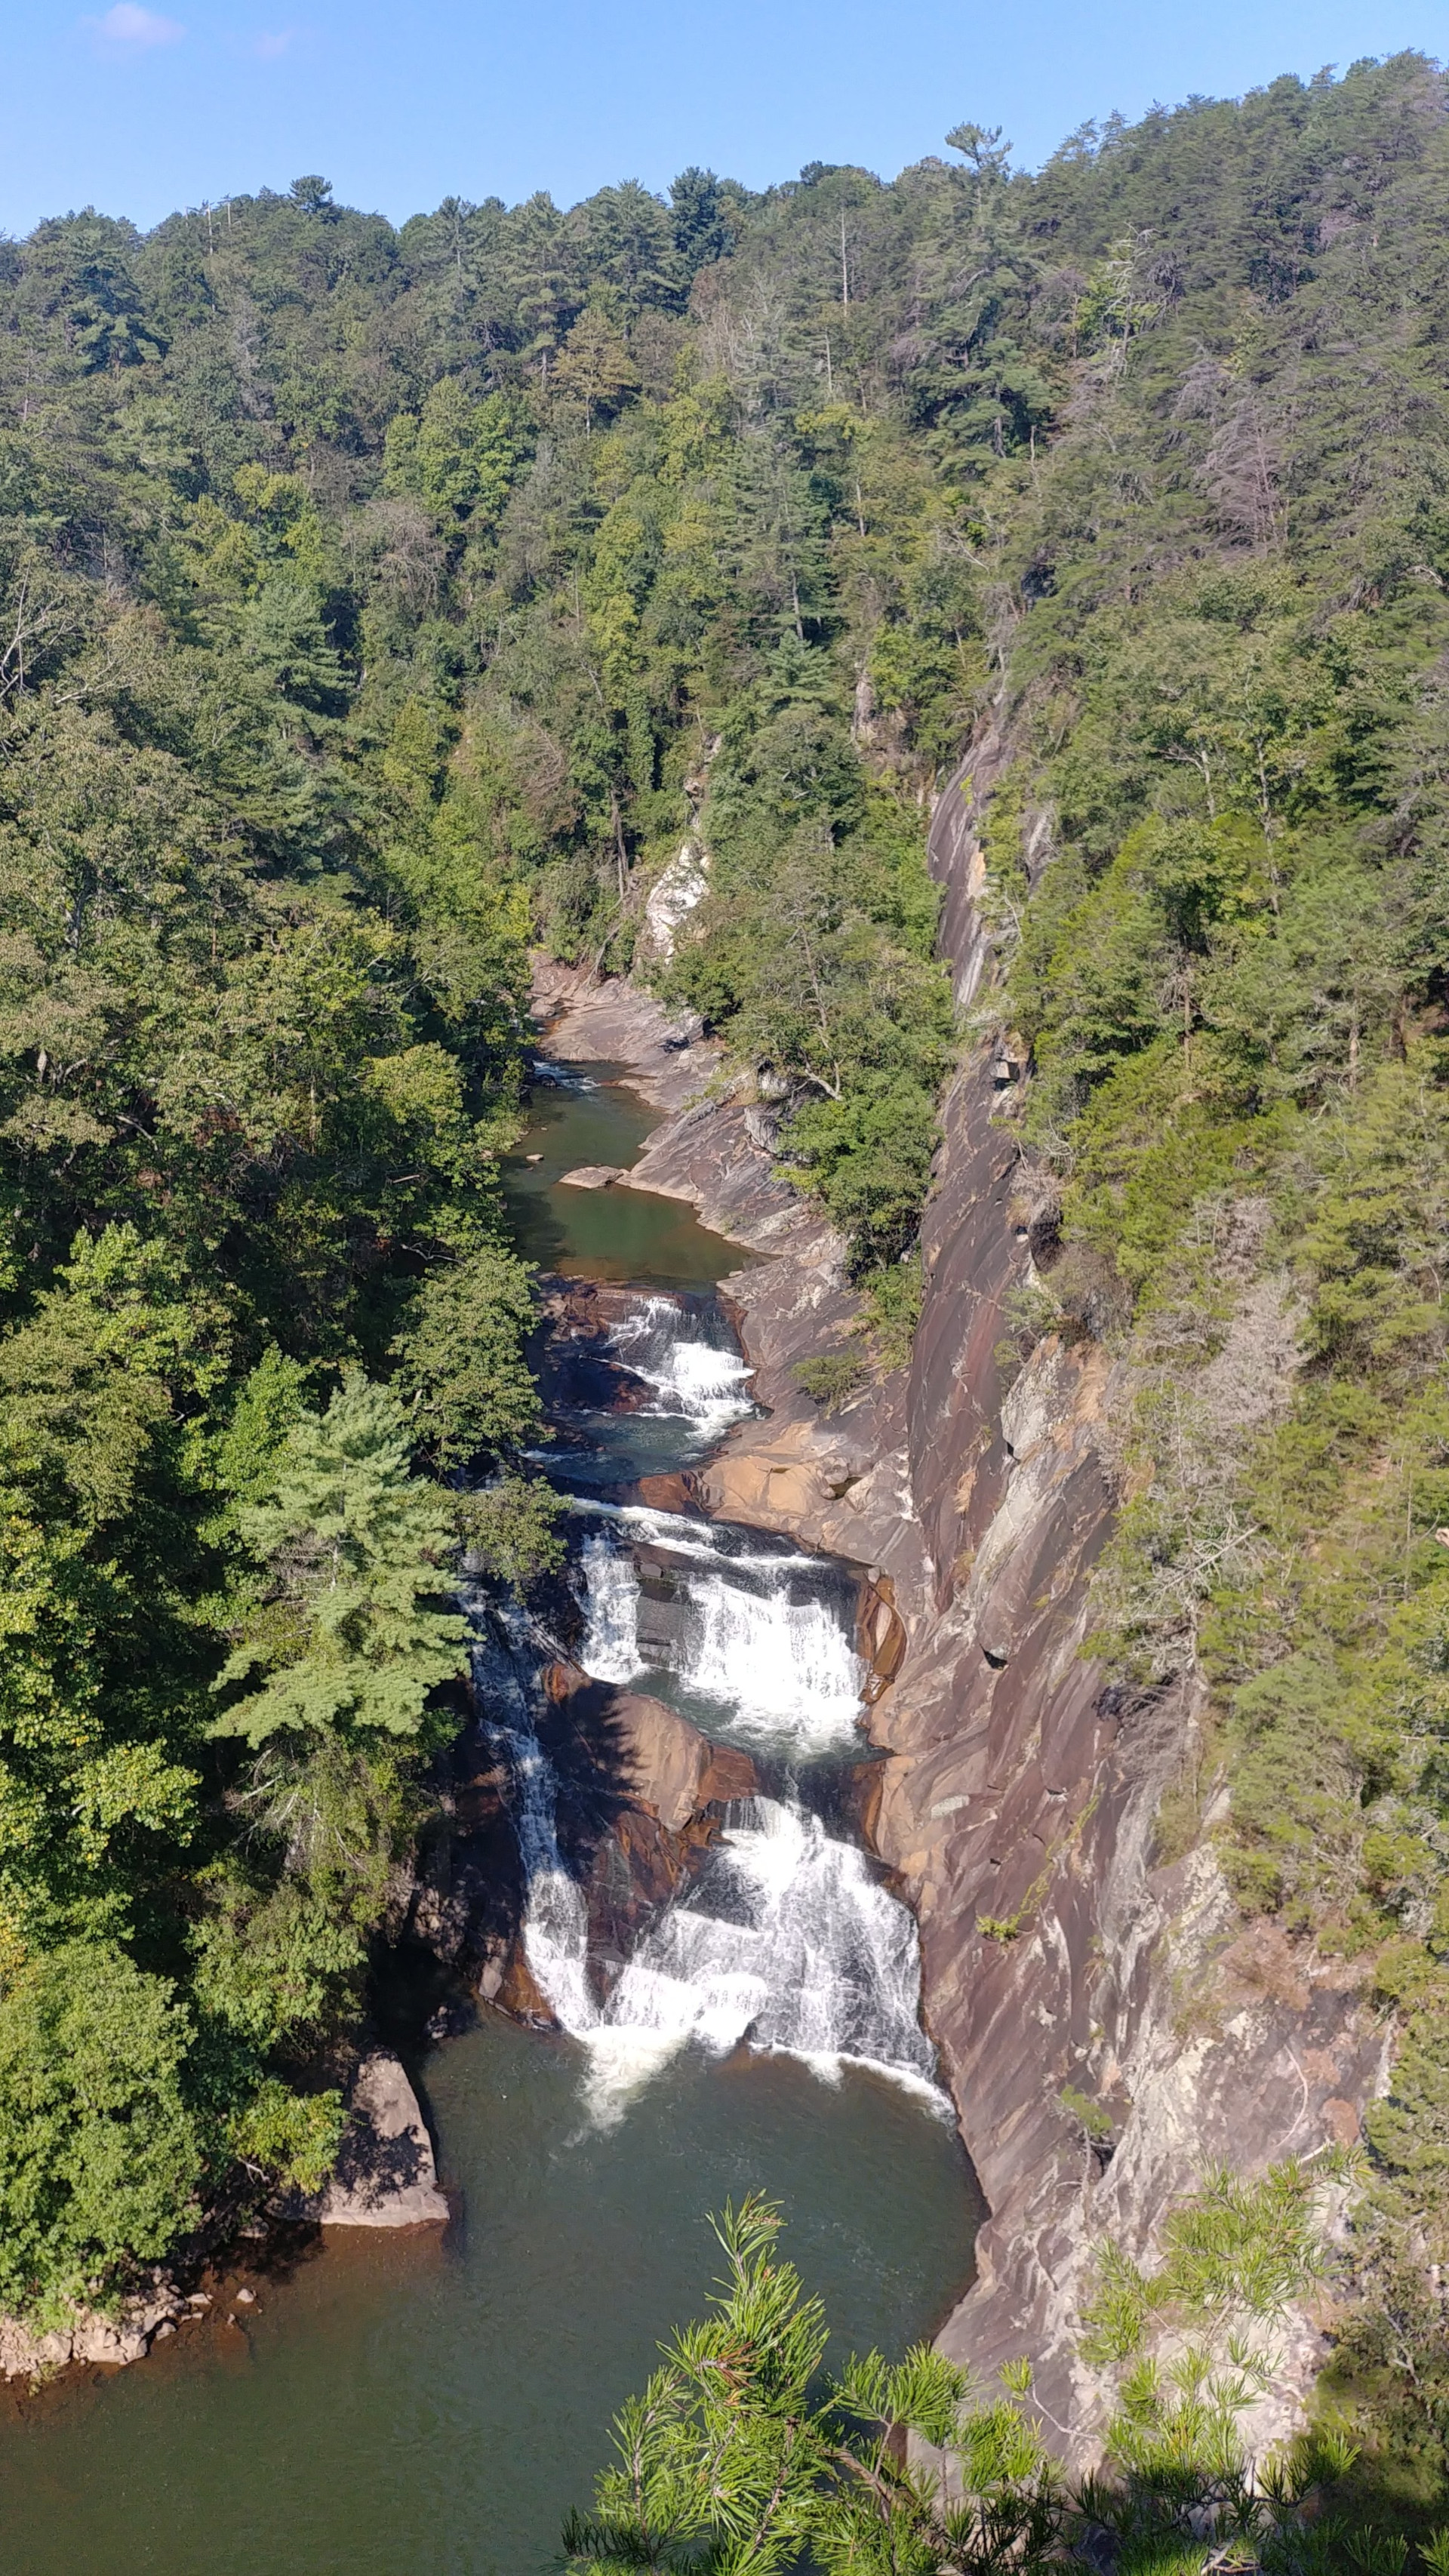 Tallulah Gorge State Park is very tourist, but that does not make it any less fascinating